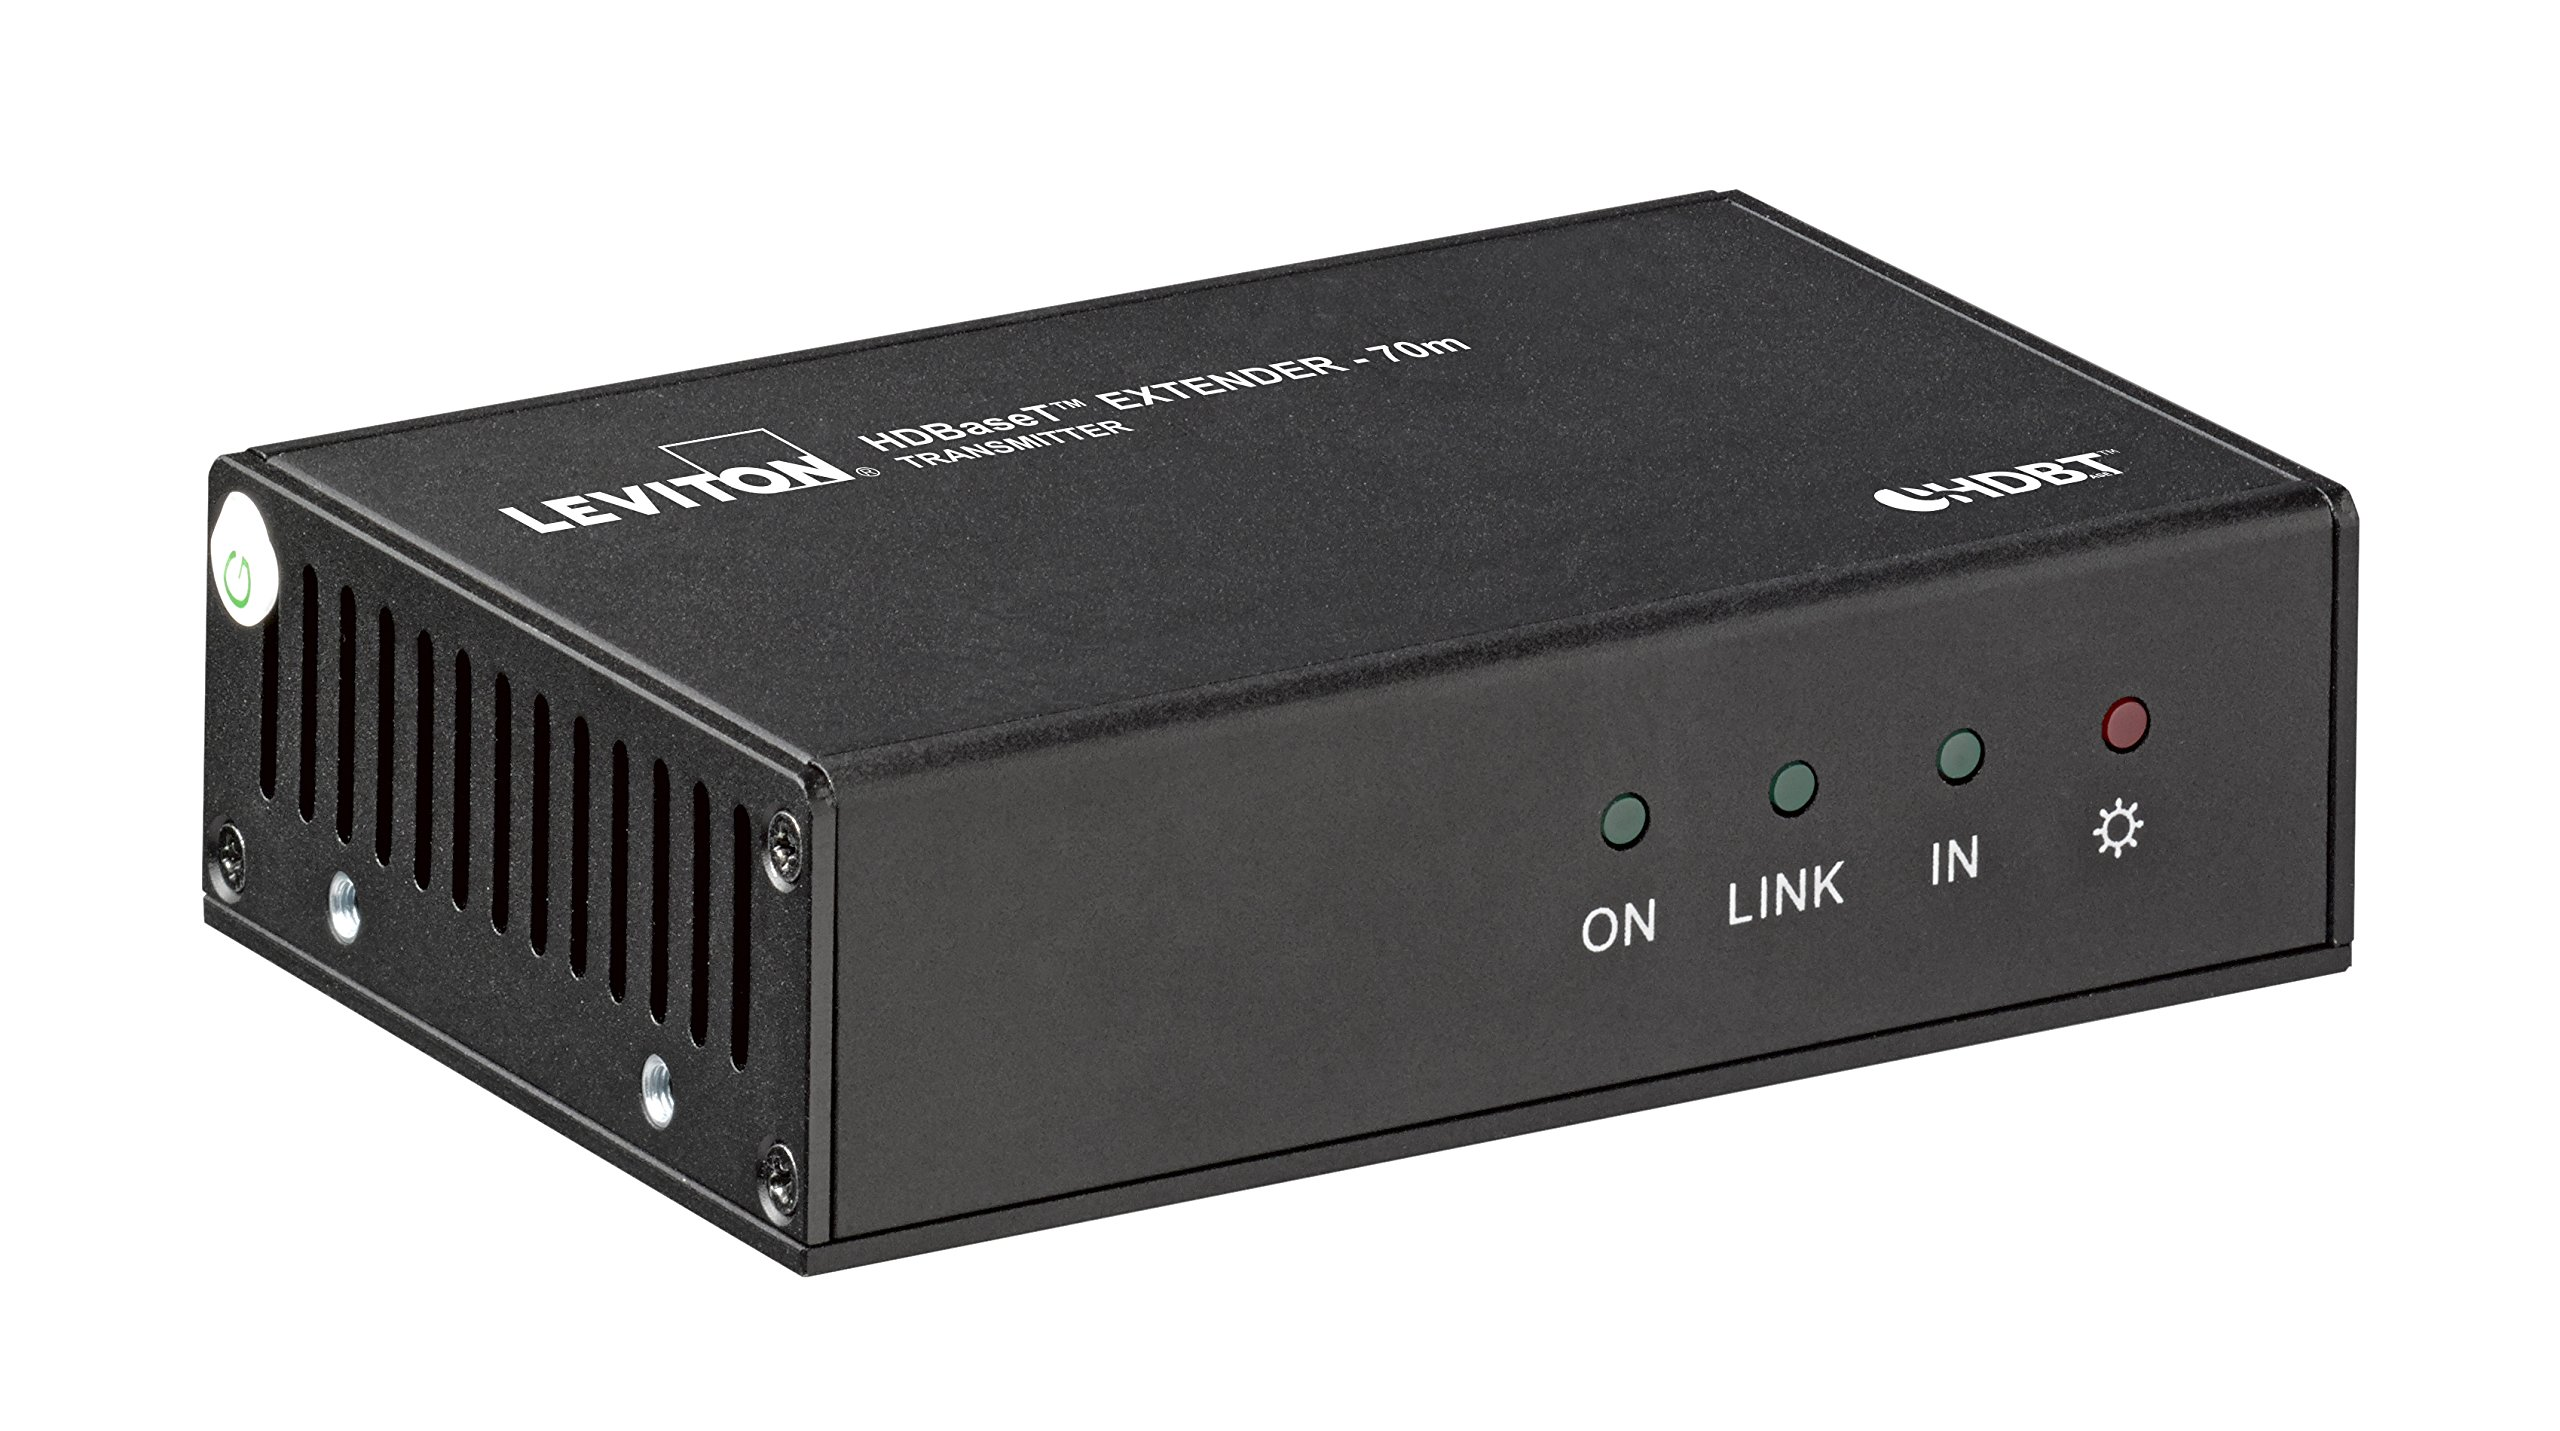 Leviton 41910-HT0 HDMI Extender with HDBaseT, Transmitter and Receiver, 70 Meters